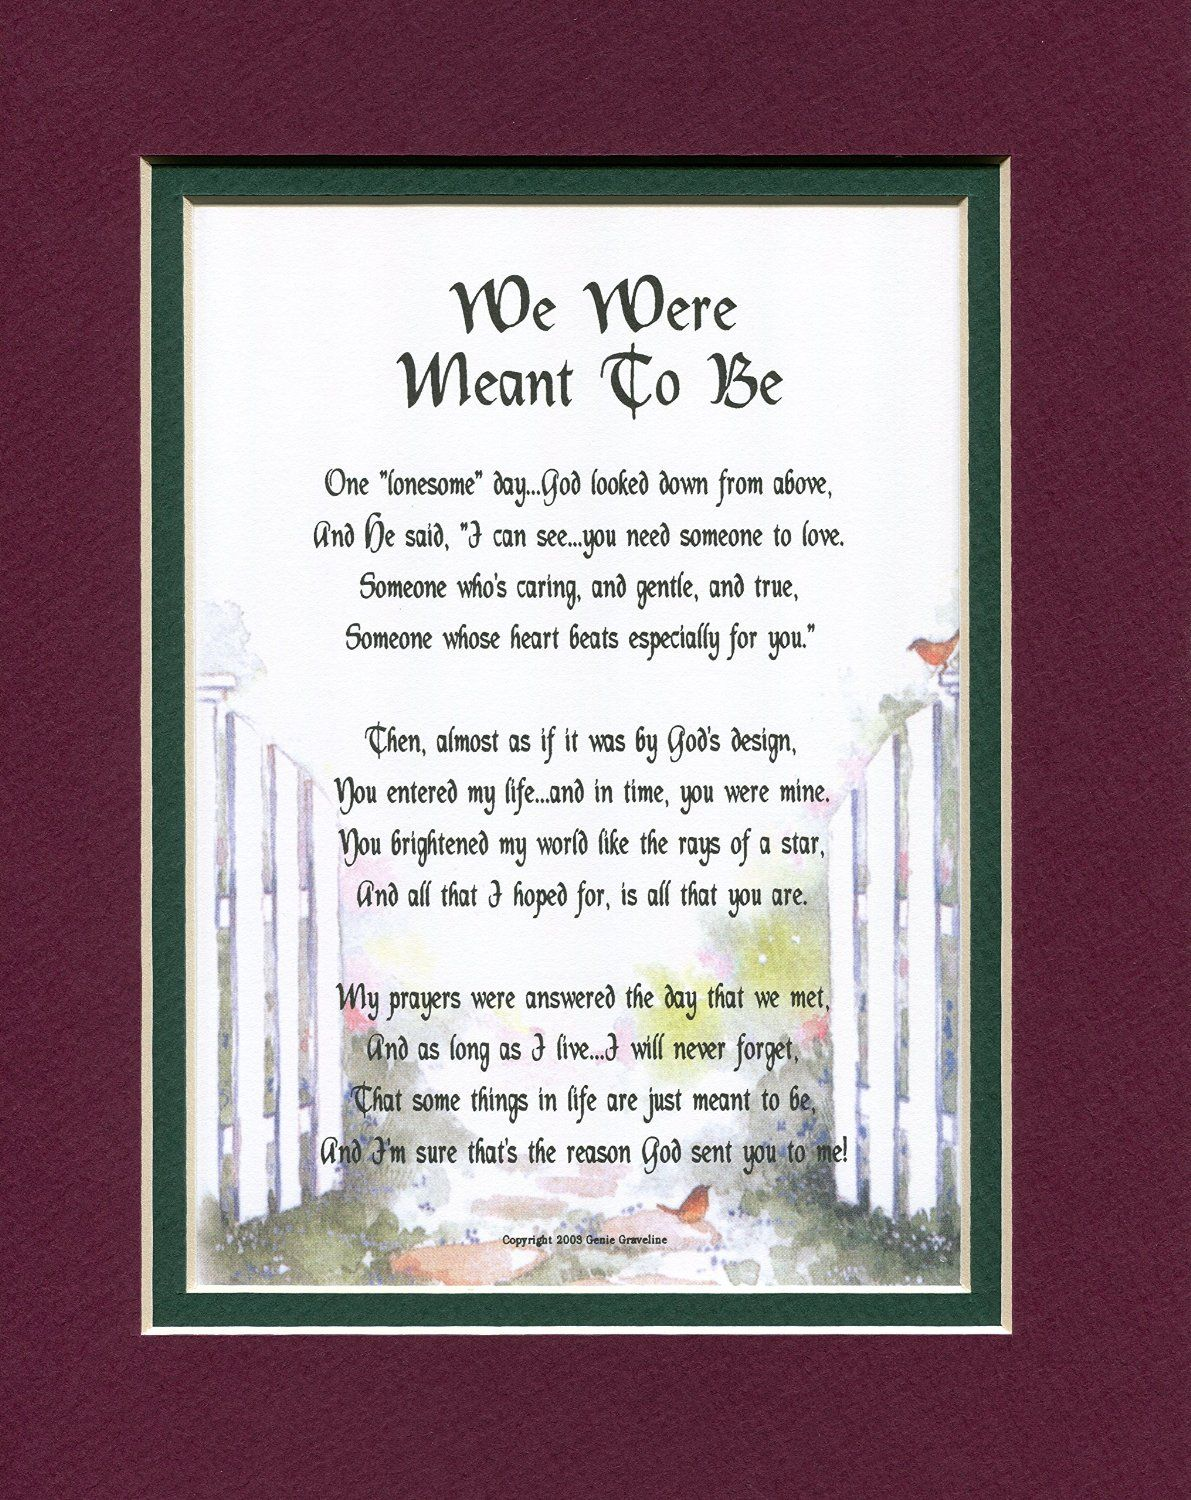 "Amazon.com - ""We Were Meant To Be"" Touching 8x10 Poem, Double-matted in Burgundy over Dark Green, And Enhanced With Watercolor Graphics. - Home Decor Products"